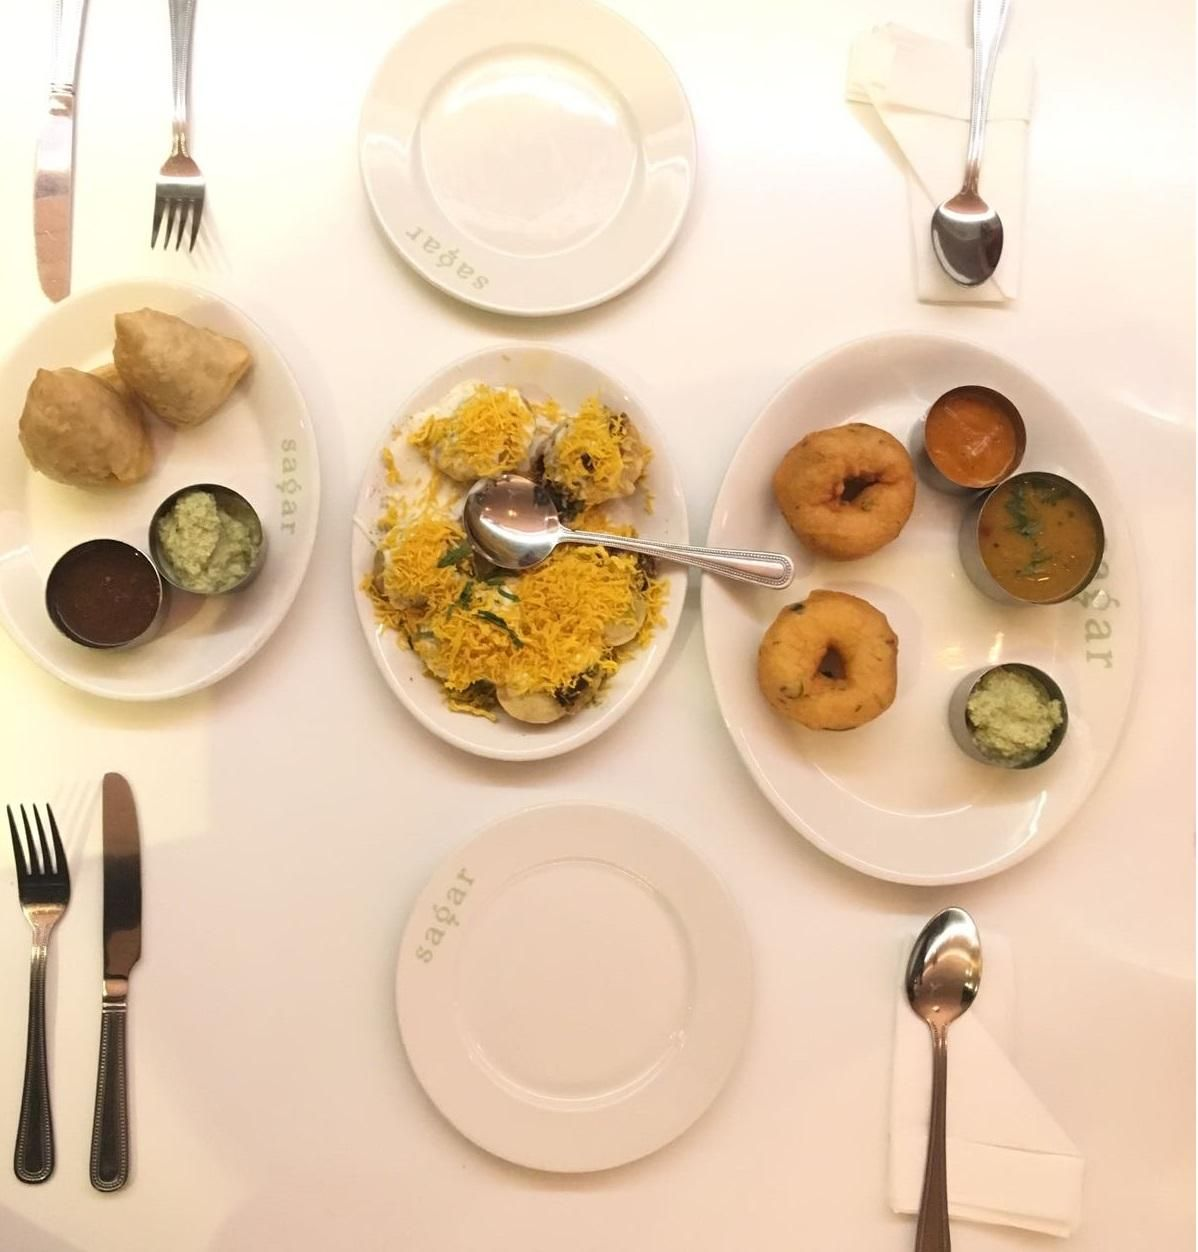 'It was, without a doubt, the best Indian food I have had and a restaurant that stands above the rest.'